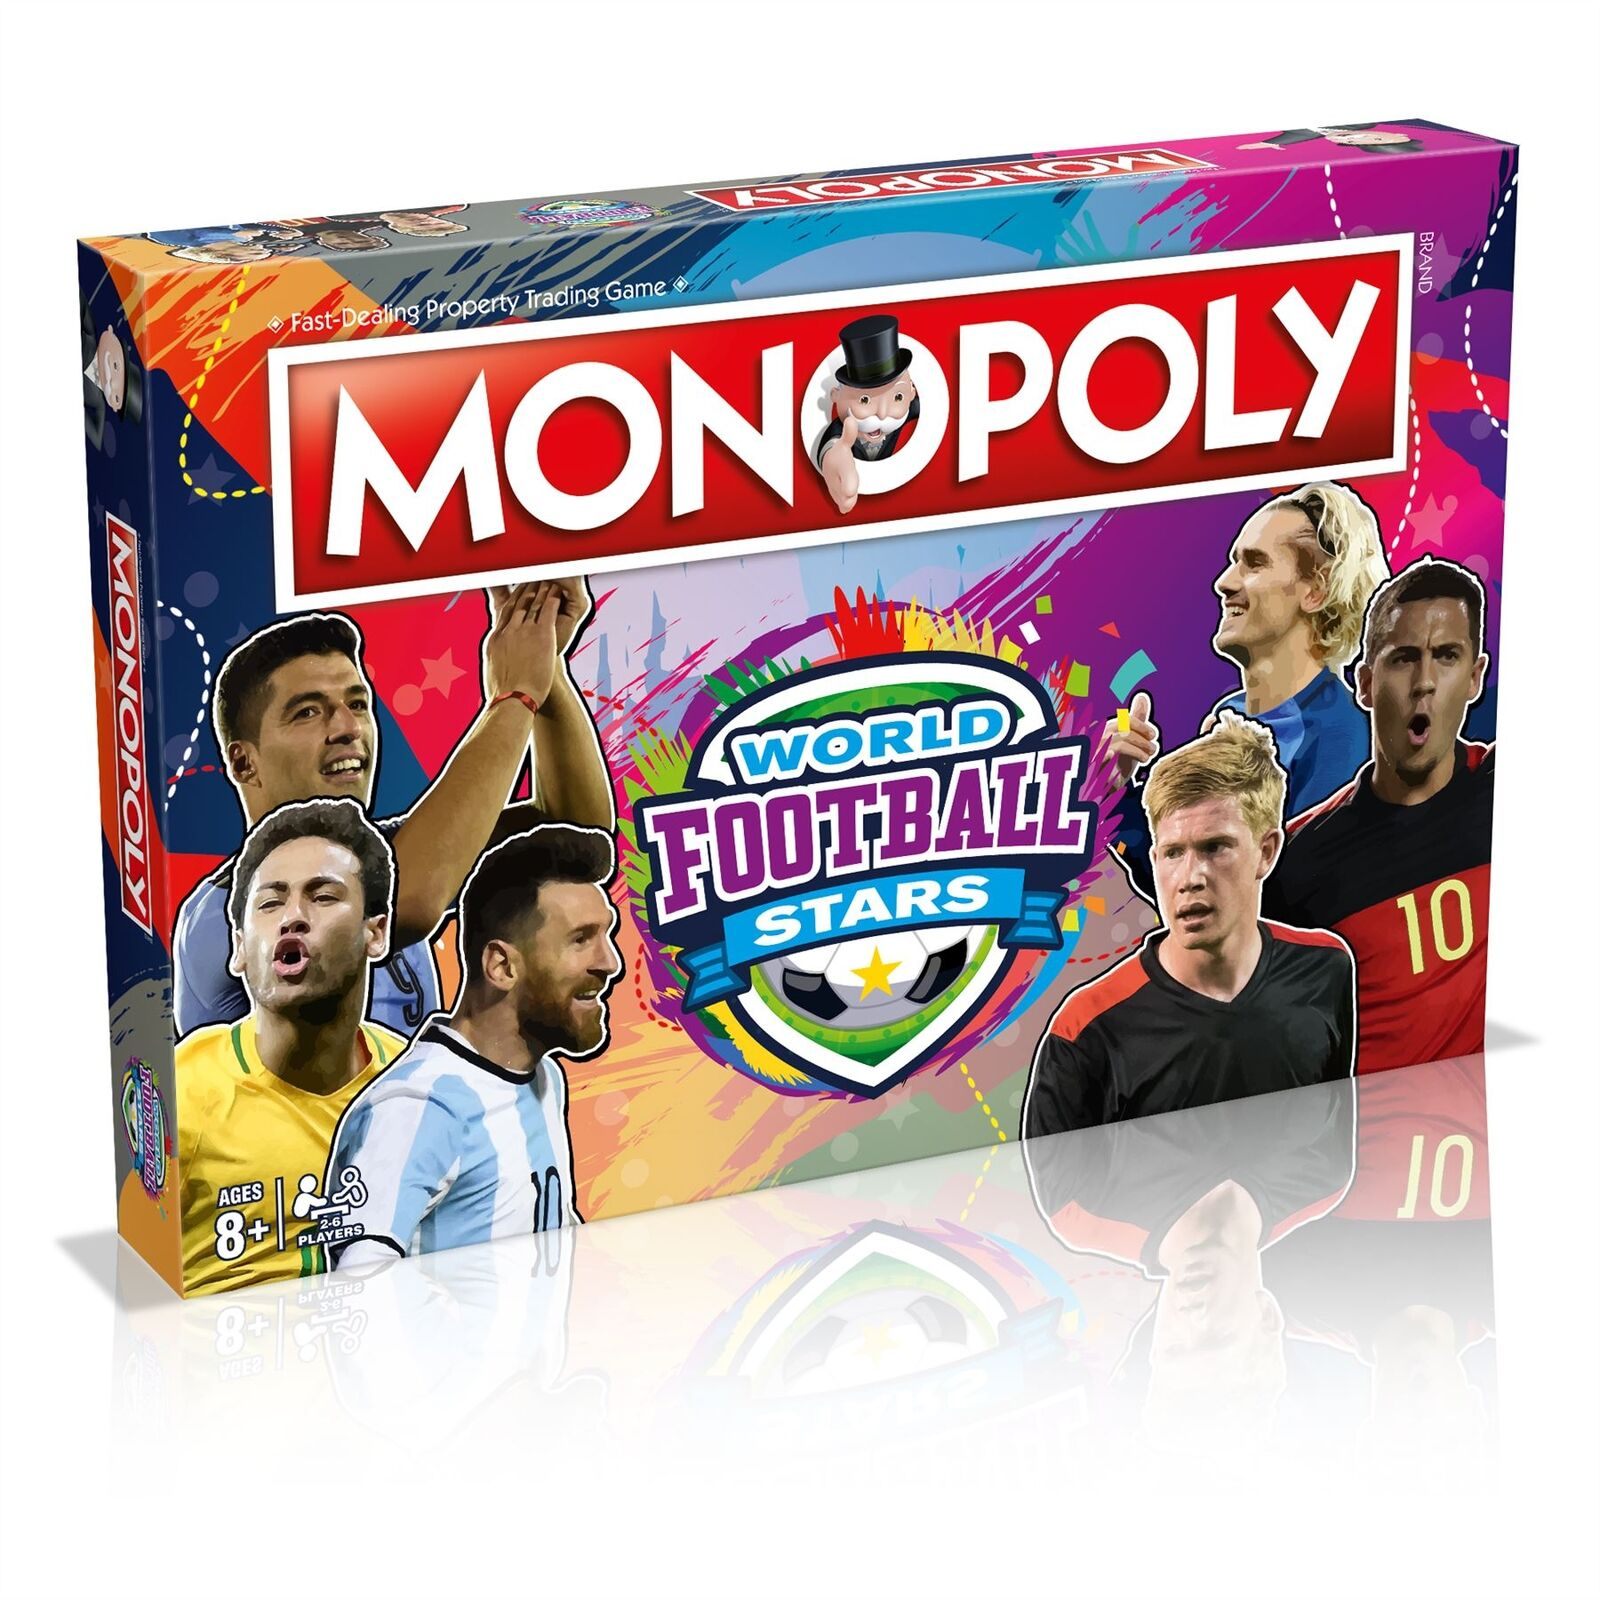 Monopoly World Football Stars - 2019 by Winning Moves